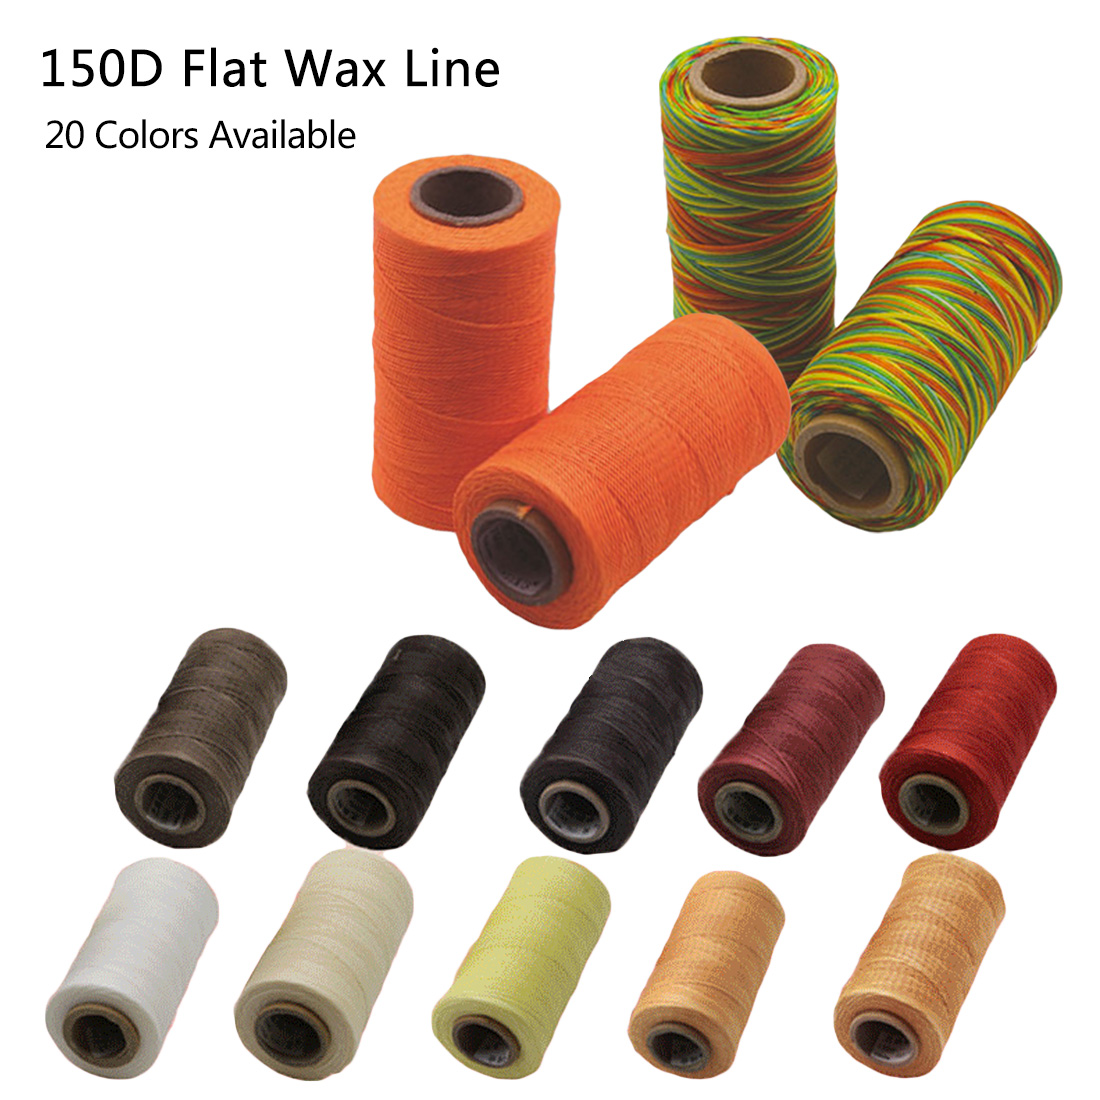 150D 50m Sewing Flat Wax Line Handmade DIY Necklace Bead String Art Crafts Rope